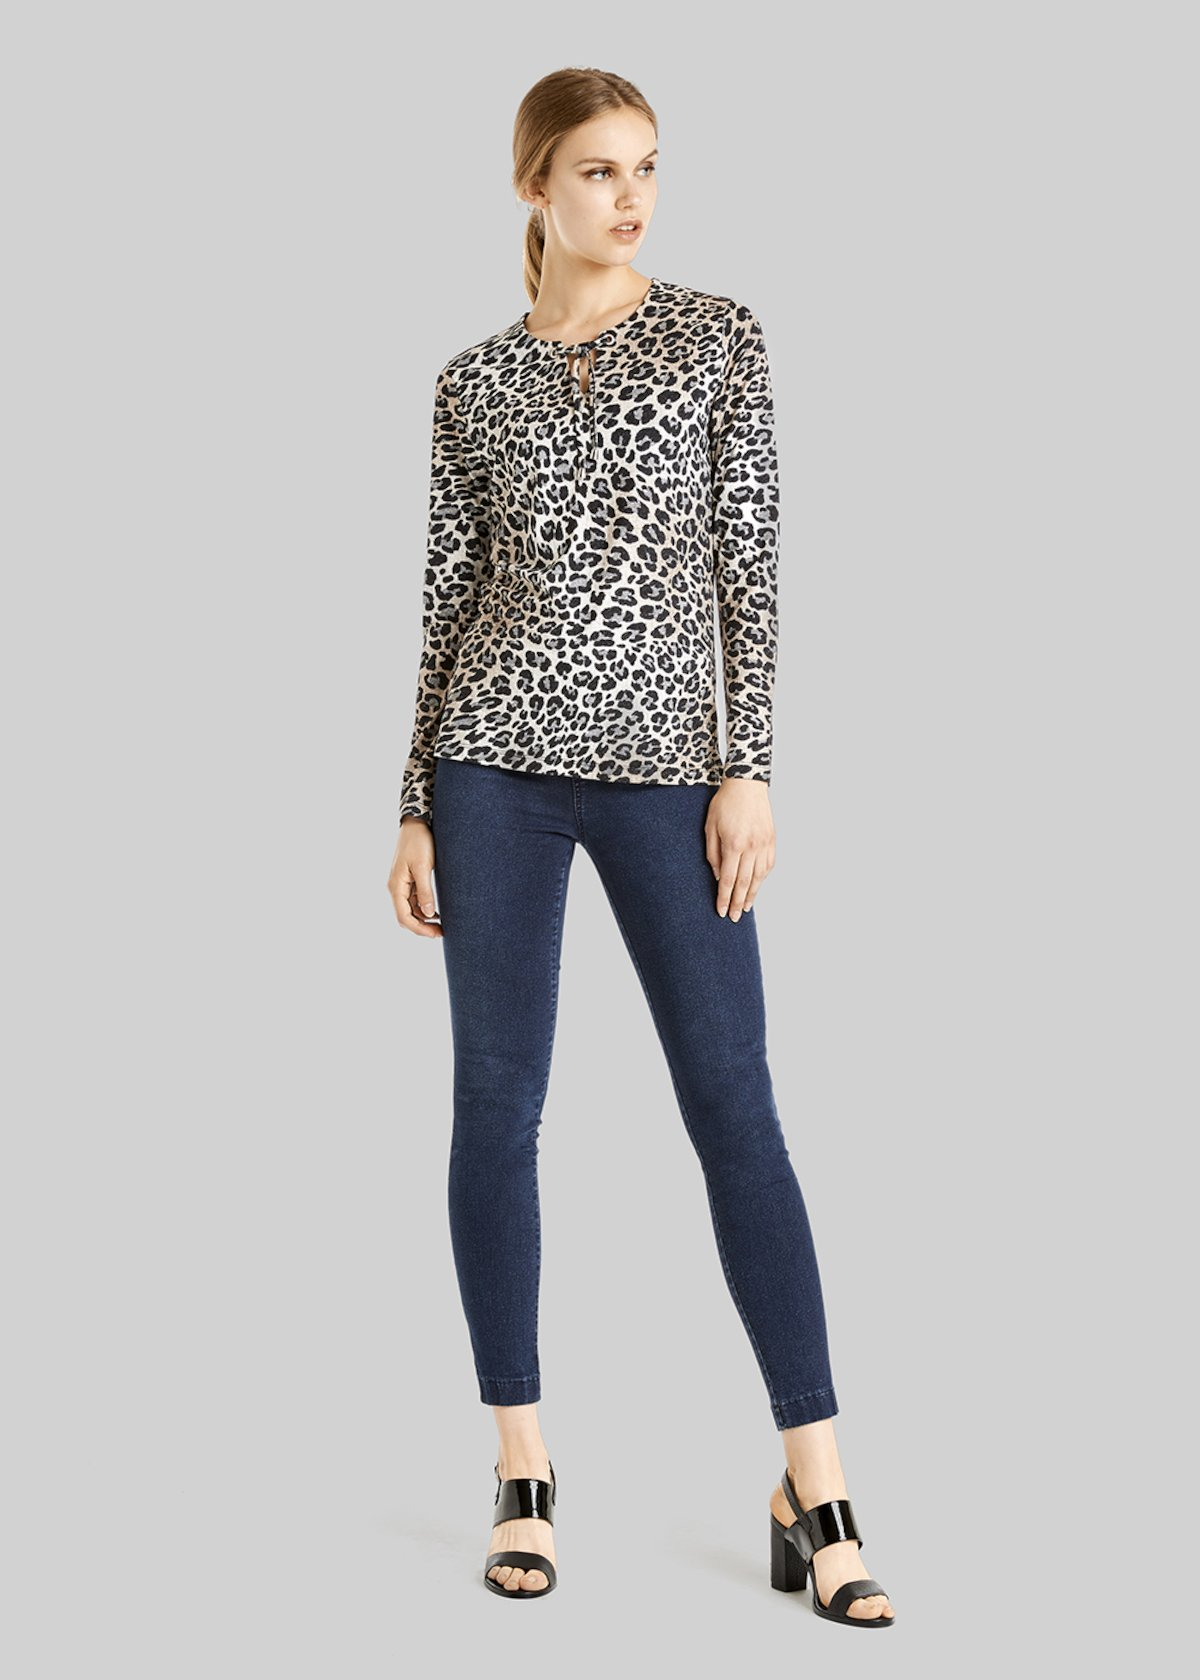 Martin sweater with animal print - Black\ Beige\ Animalier - Woman - Category image